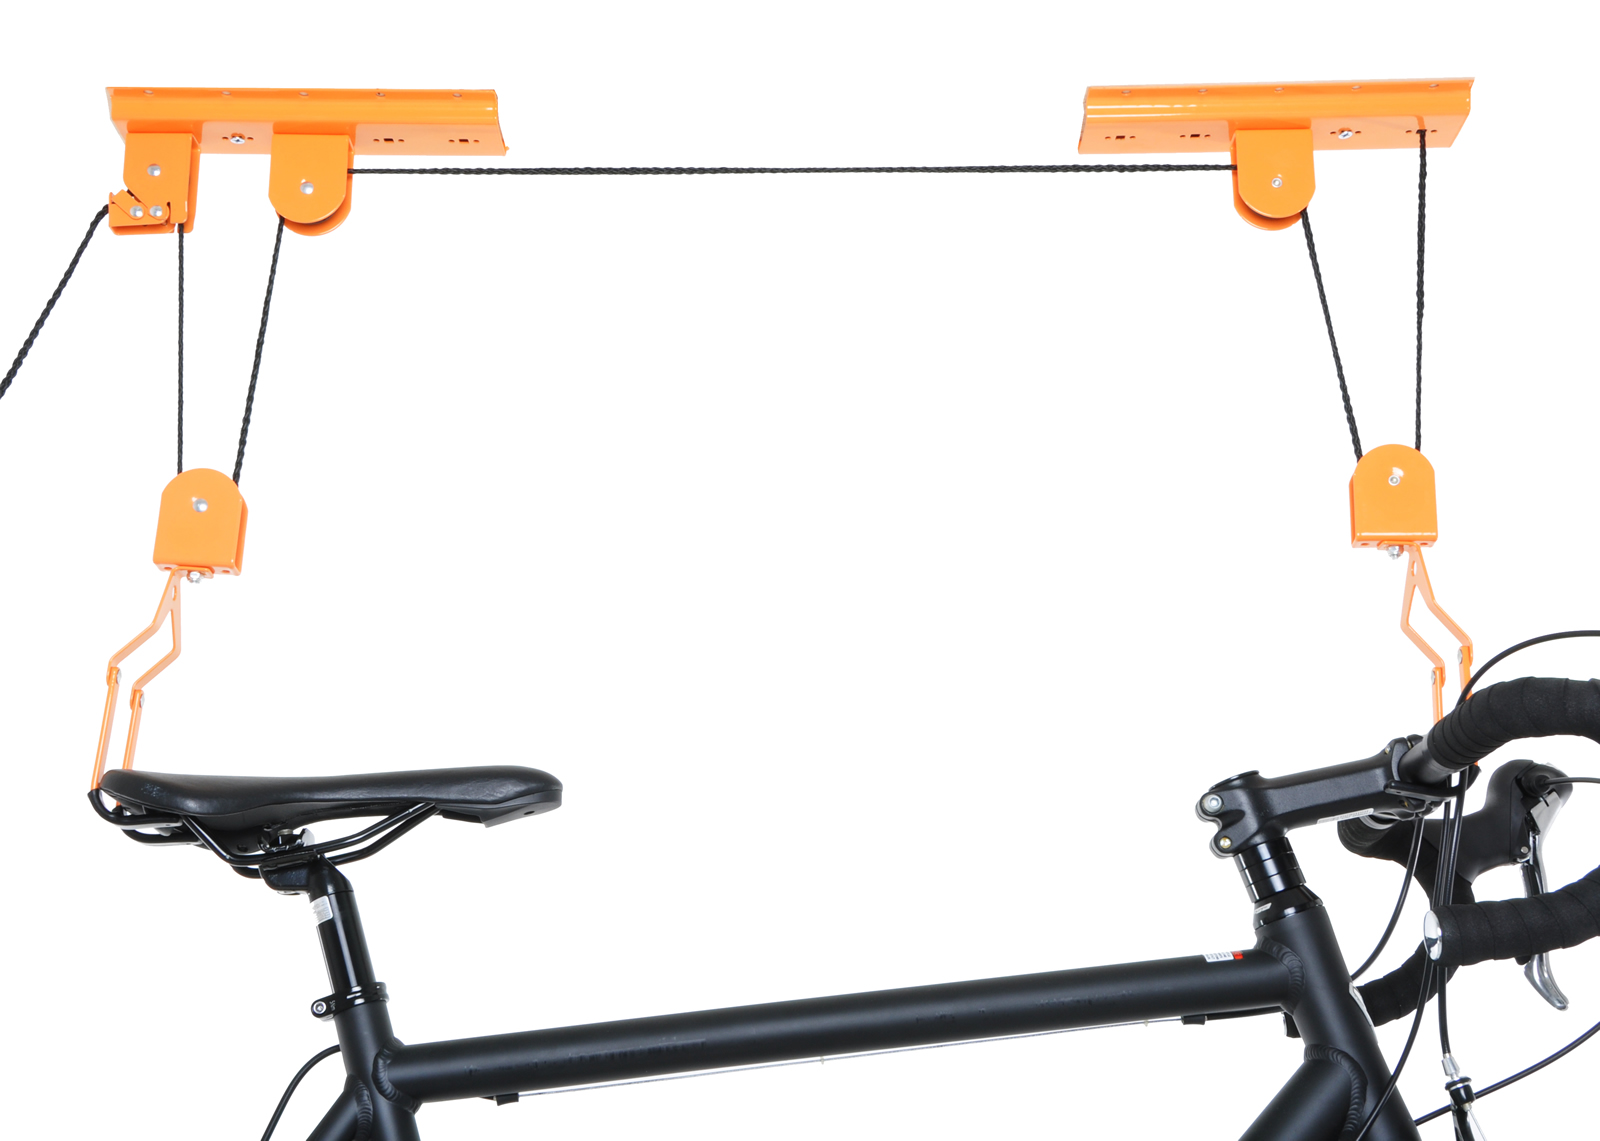 Ceiling Mounted Garage Bike Lift Bicycle Hoist